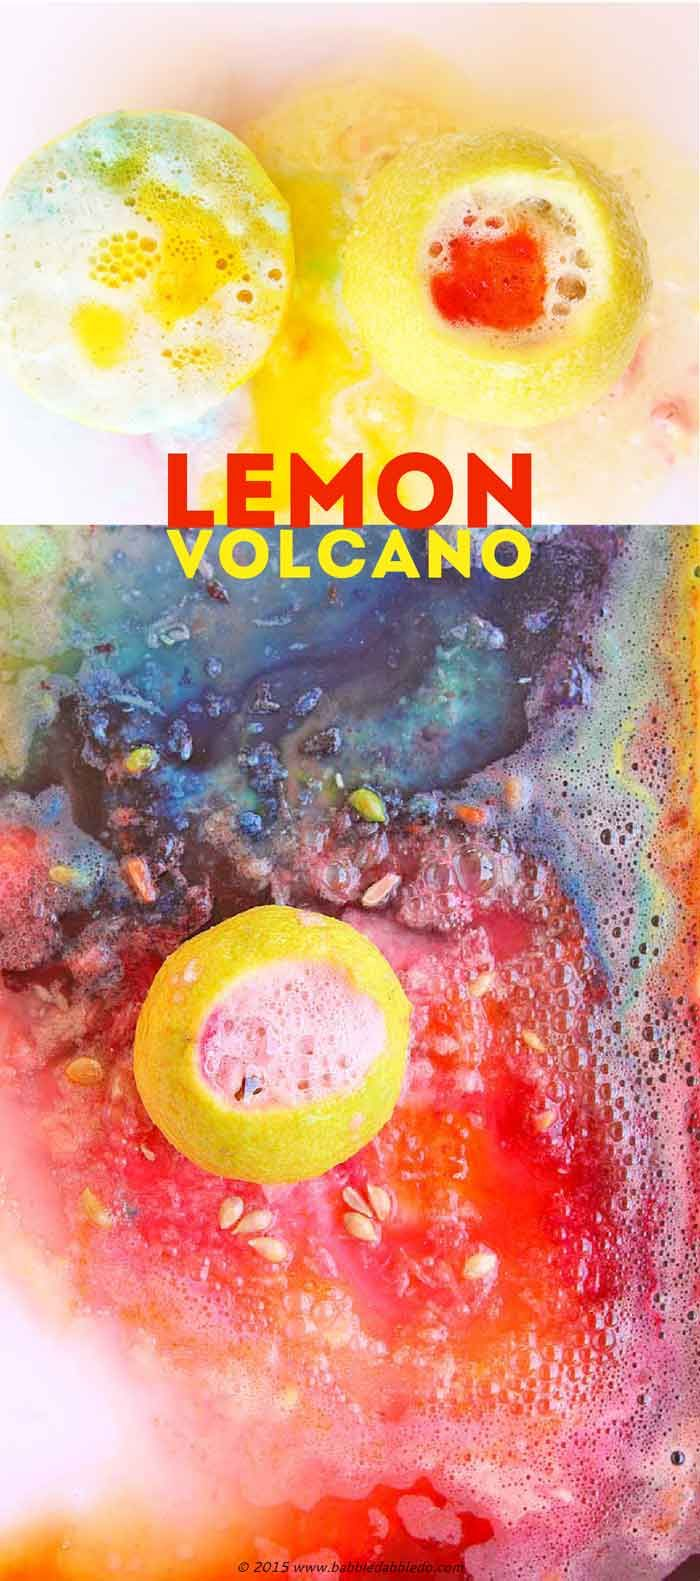 Try this easy science activity for kids: make lemon volcanoes and watch the chemical reaction of citric acid and baking soda.